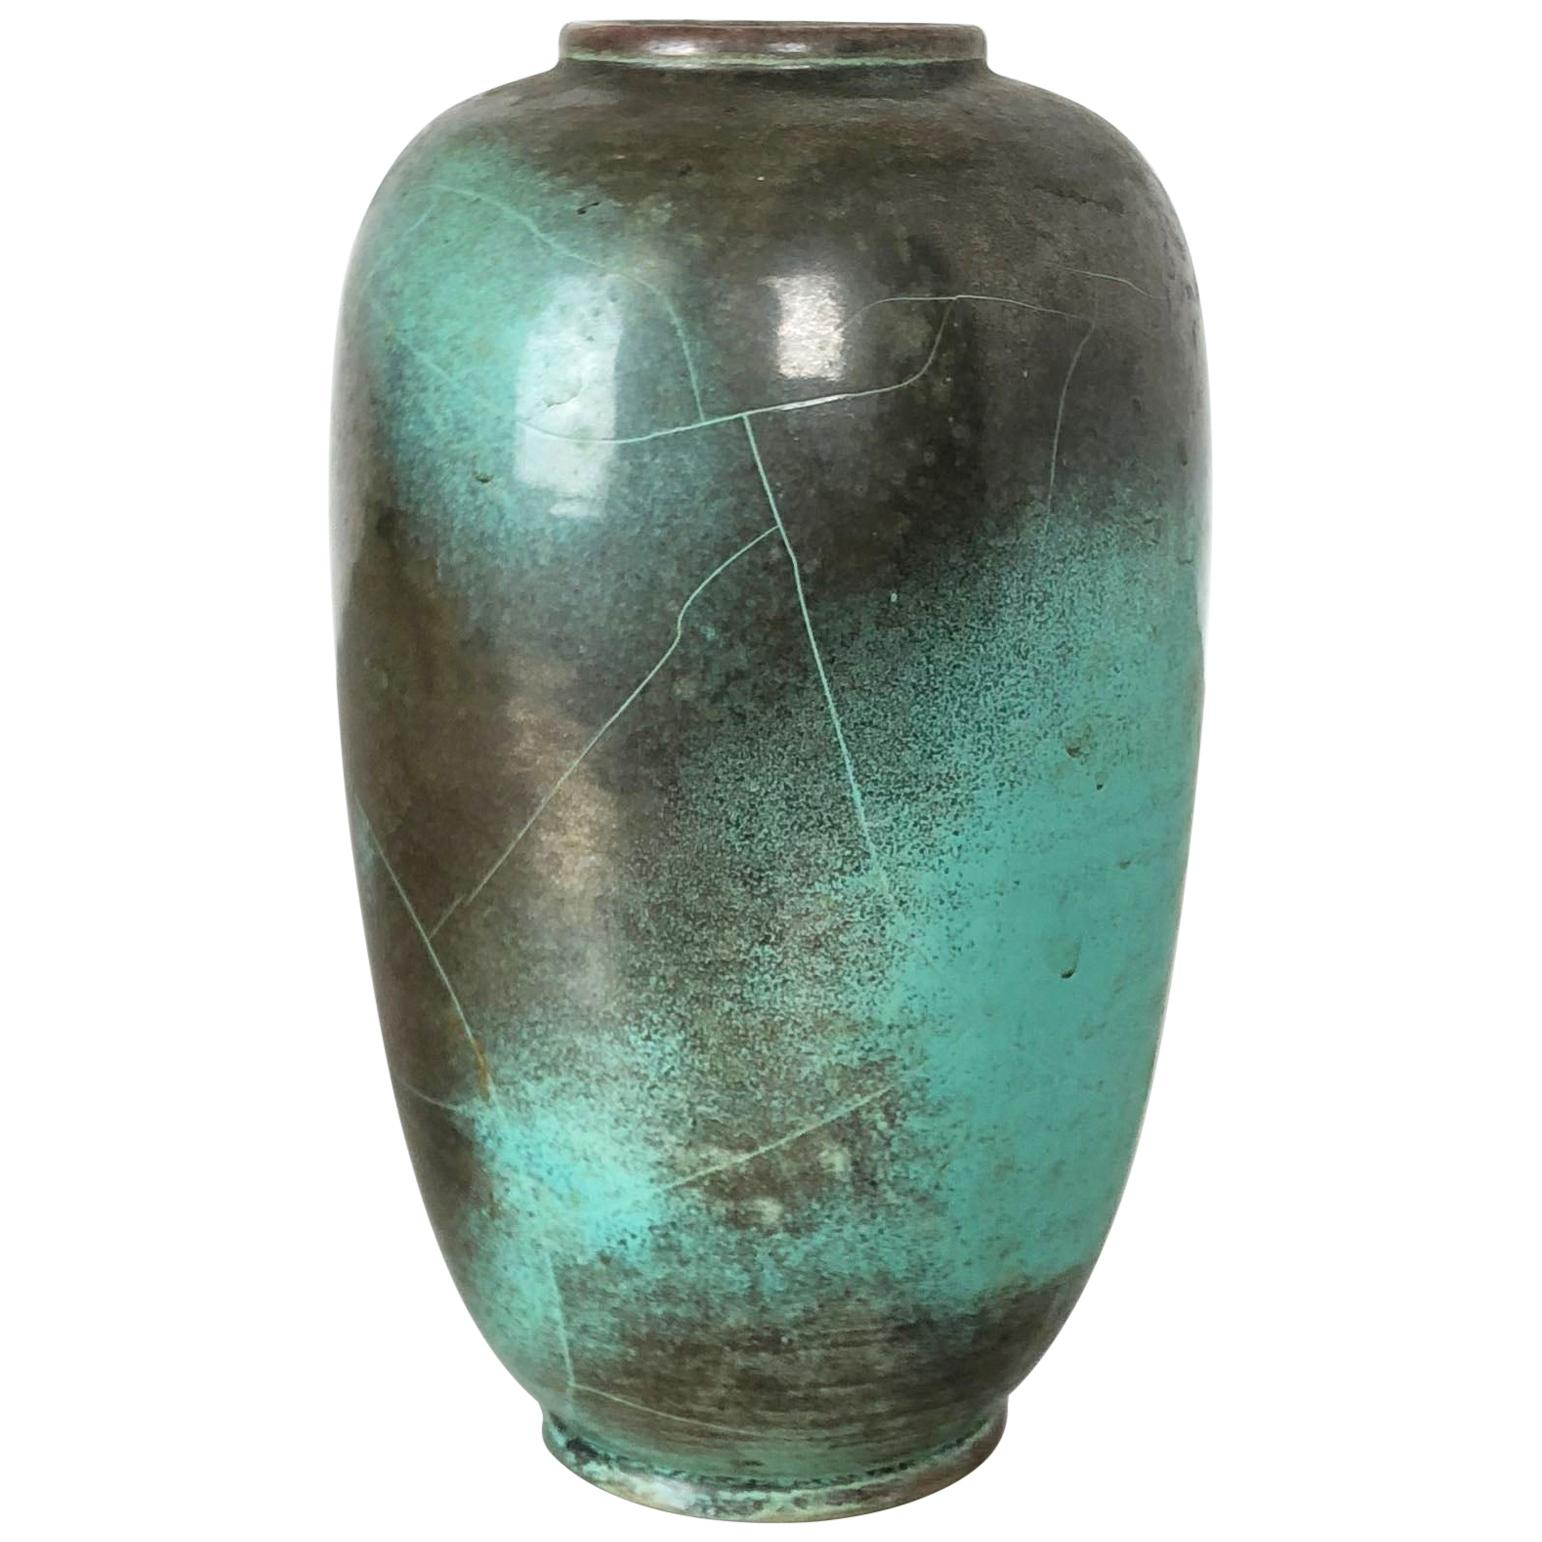 Ceramic Studio Pottery Vase Richard Uhlemeyer Hannover, Germany, 1940s